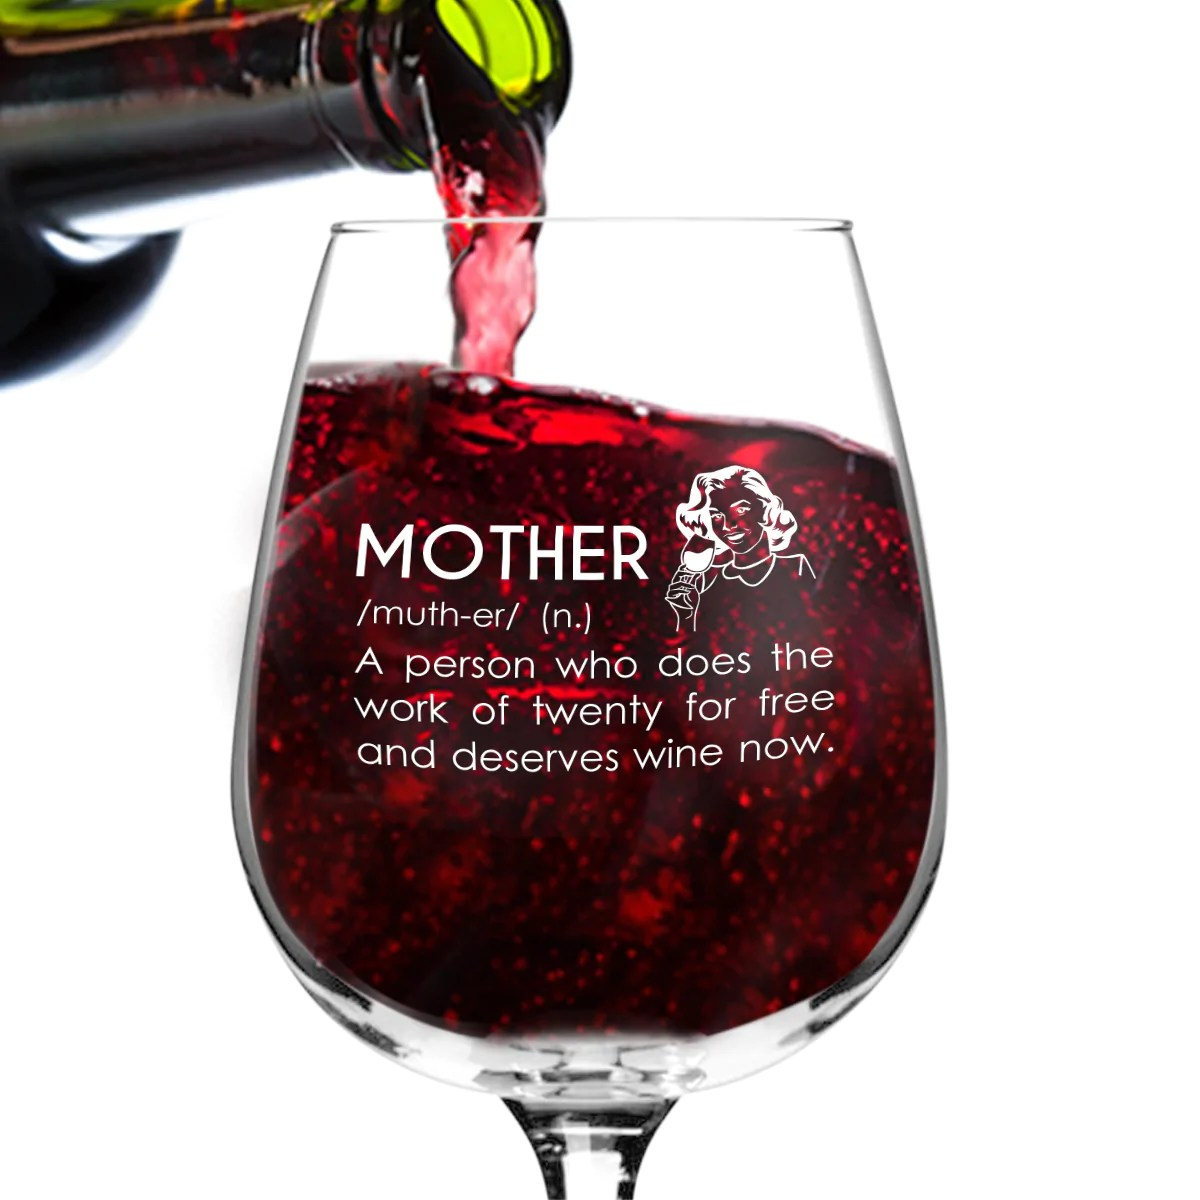 Mother Definition Funny Wine Glass Gifts For Women